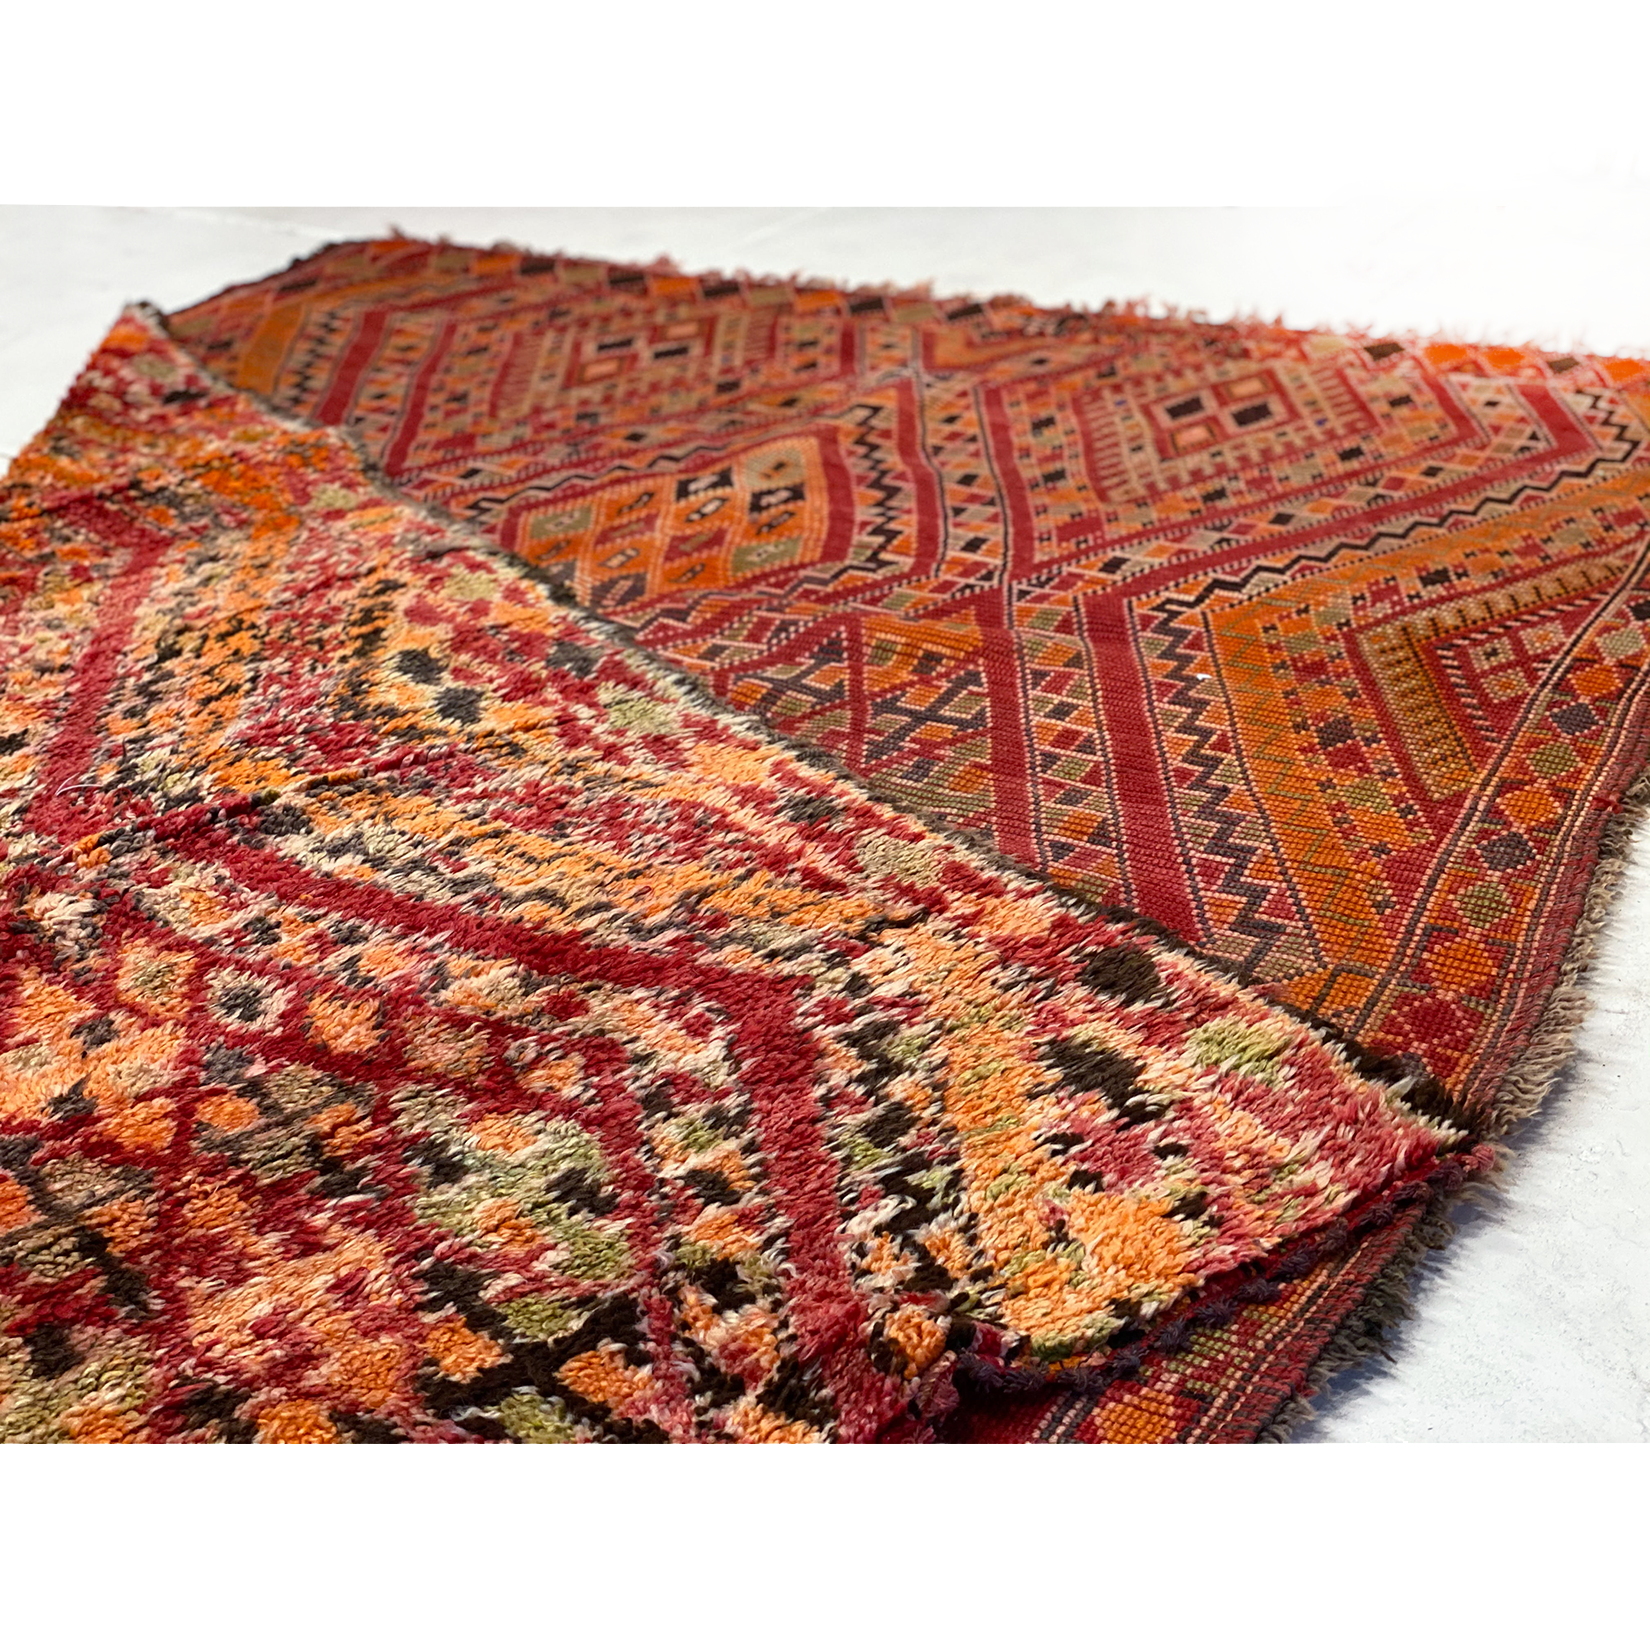 Rare red and orange Moroccan beni mguild rug - Kantara | Moroccan Rugs